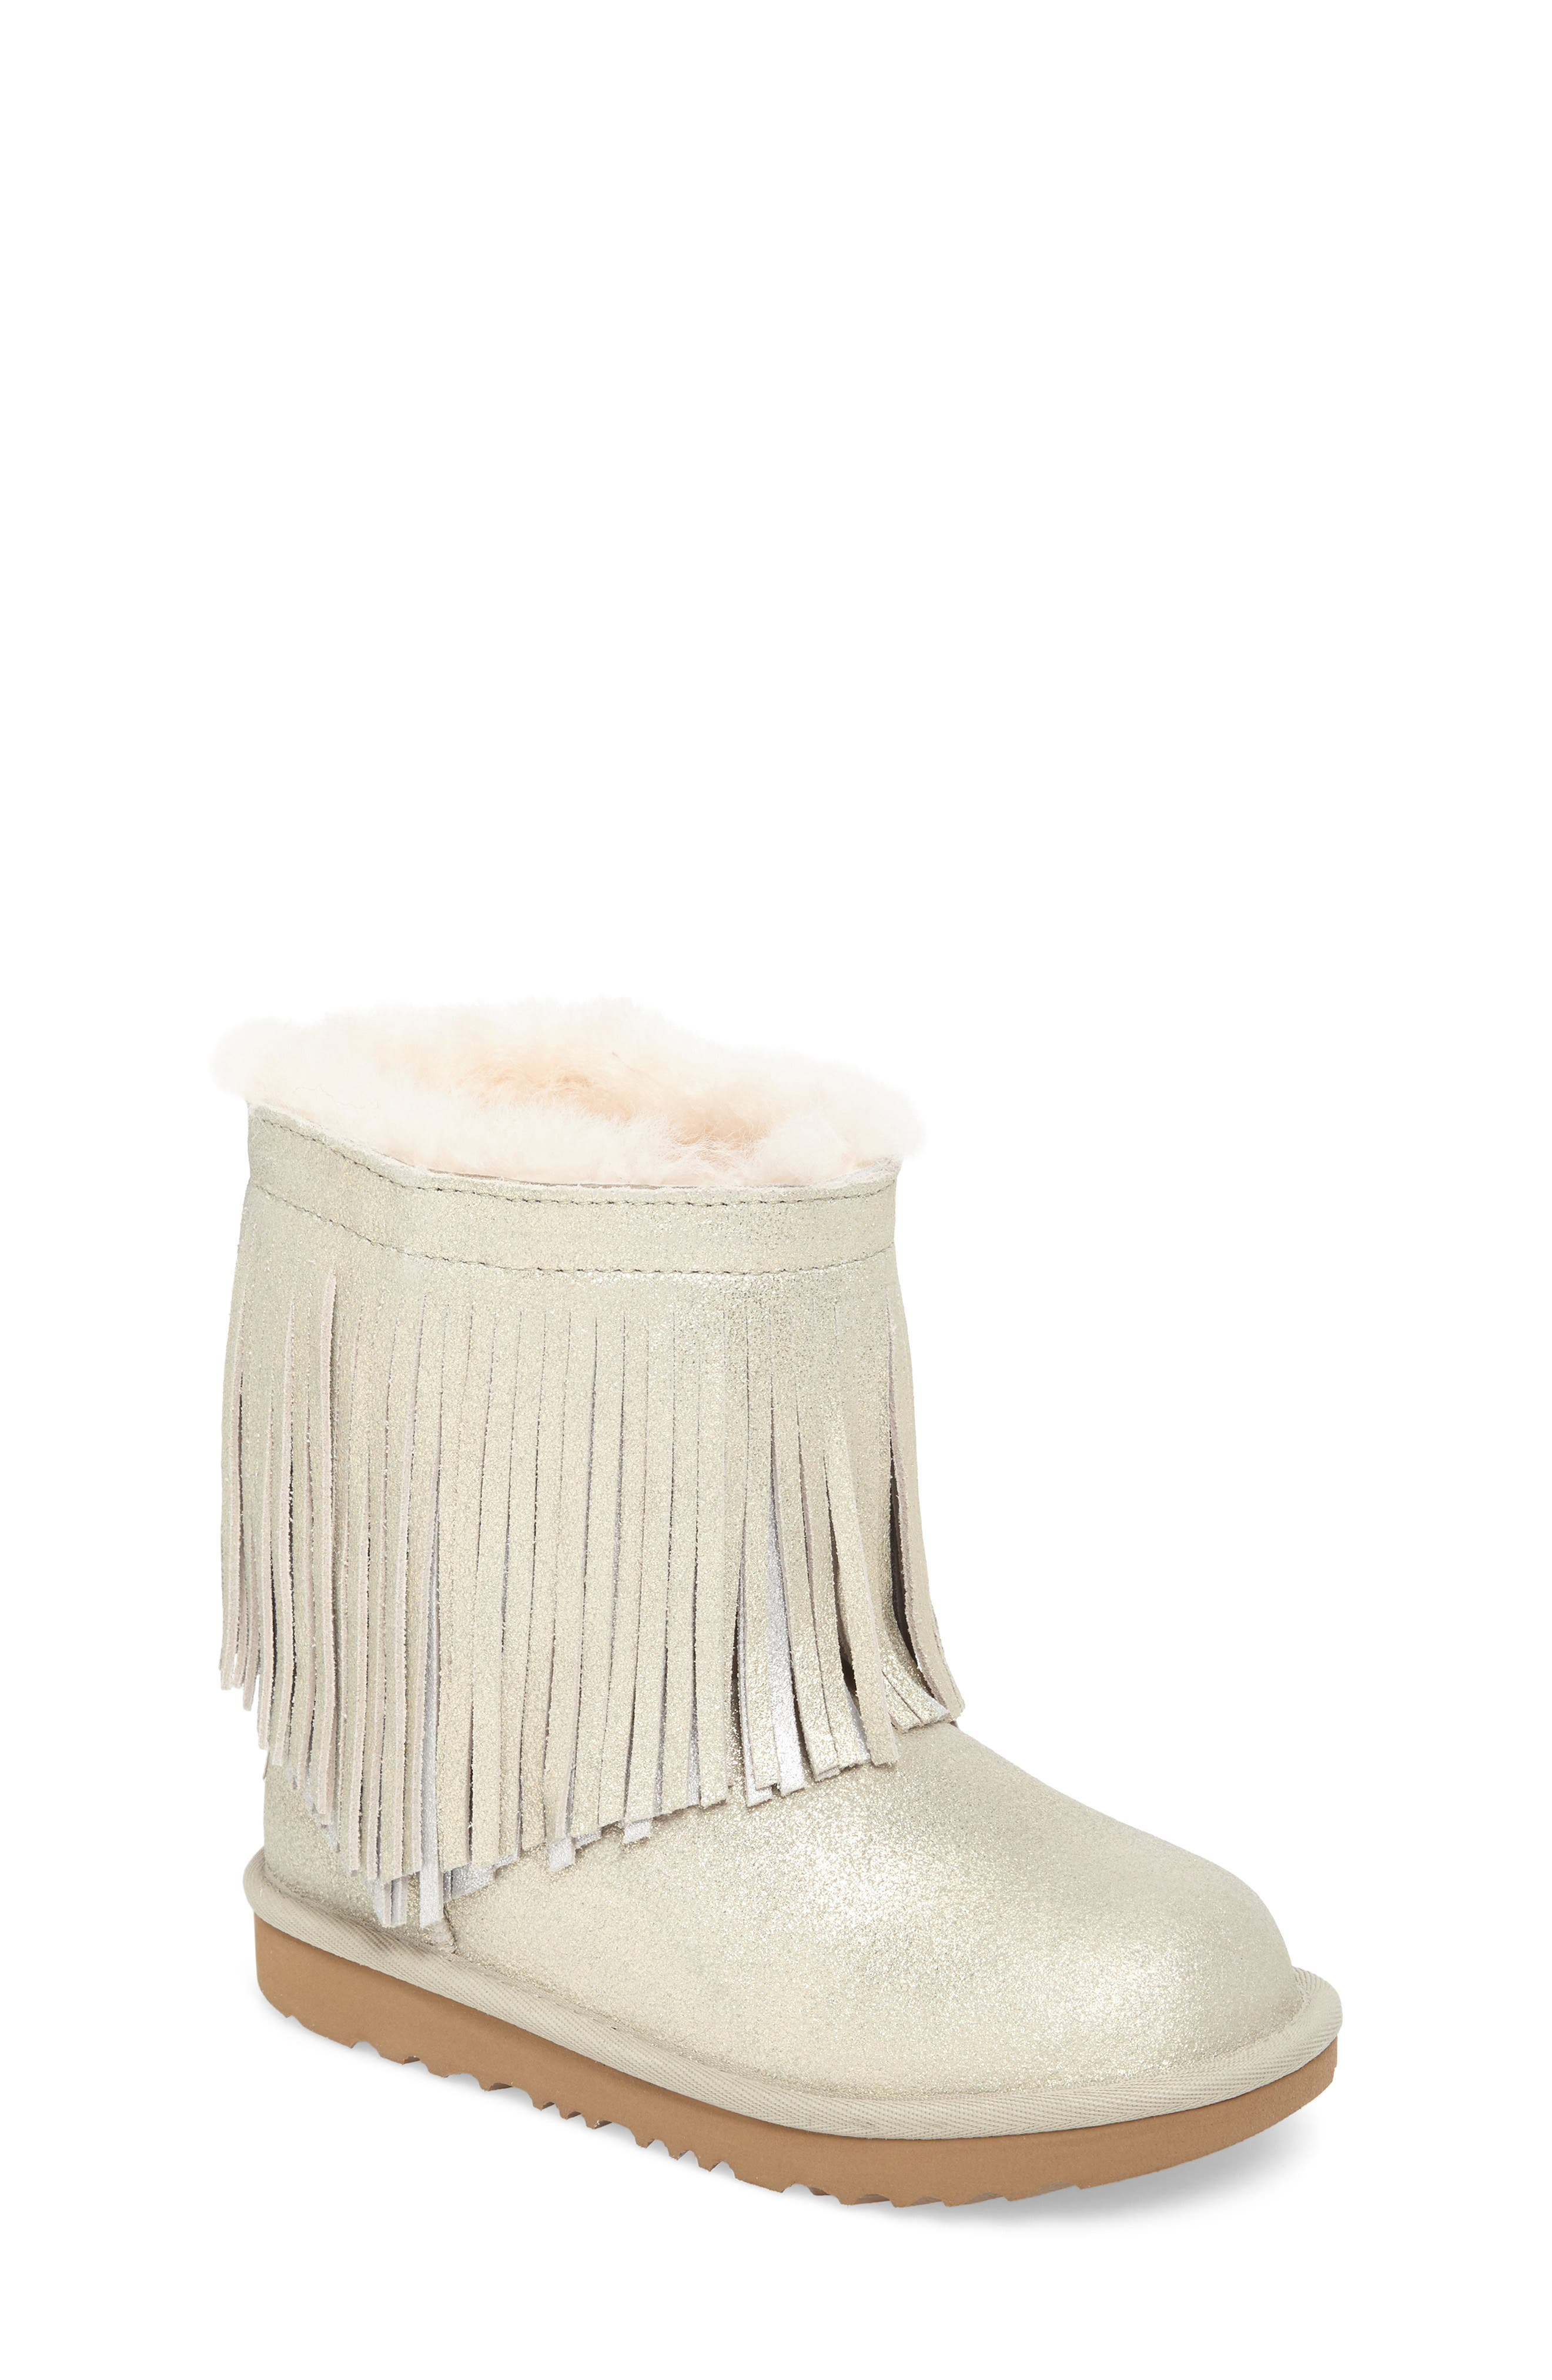 UGG® Classic Short II Genuine Shearling Metallic Fringe Bootie (Walker, Toddler, Little Kid & Big Kid)